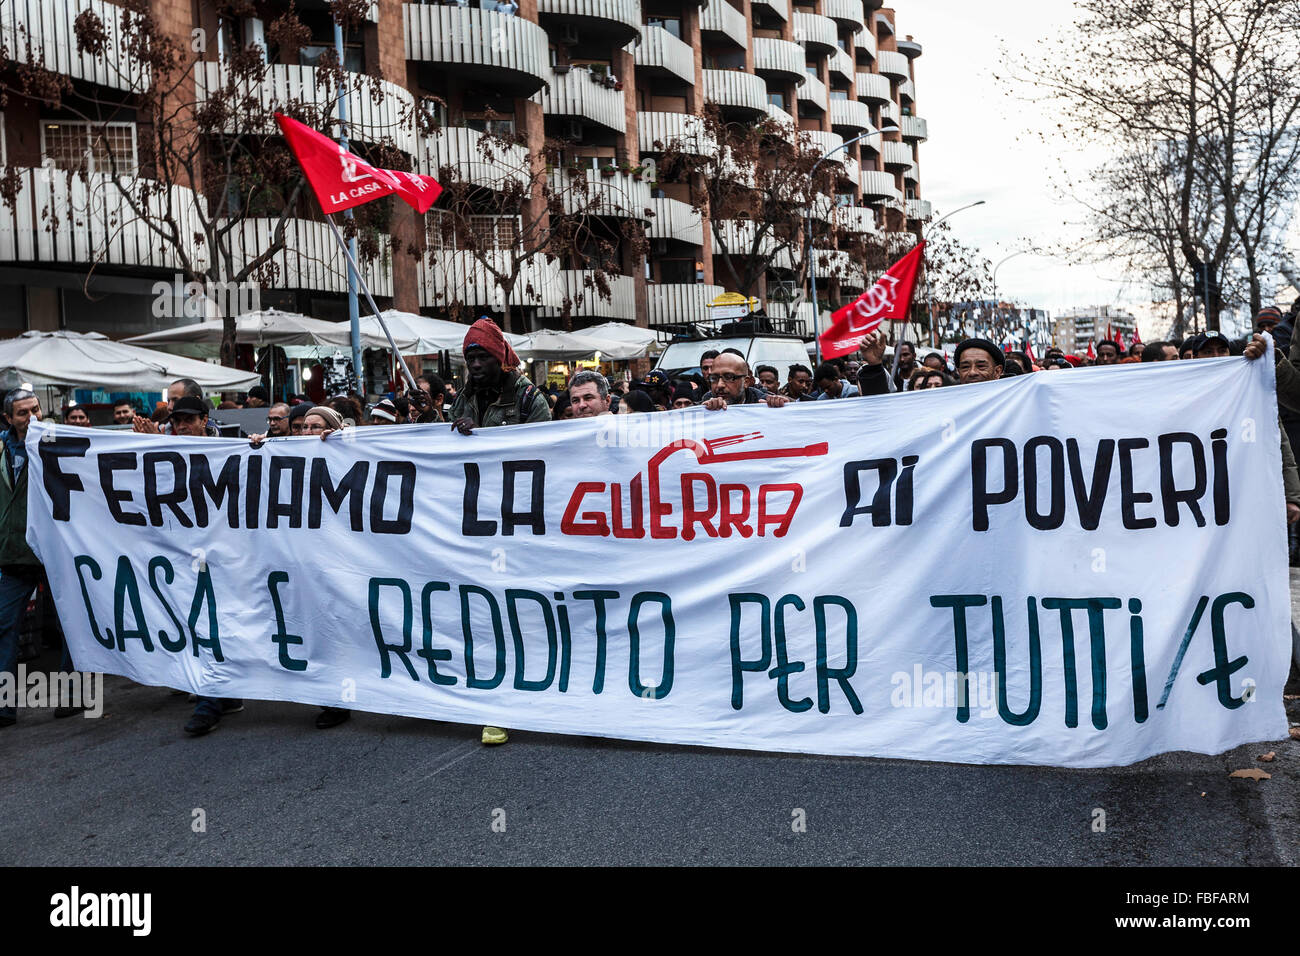 Rome, Italy. 15th Jan, 2016. 'Housing rights' activists take part in a demonstration to protest against forced housing Stock Photo